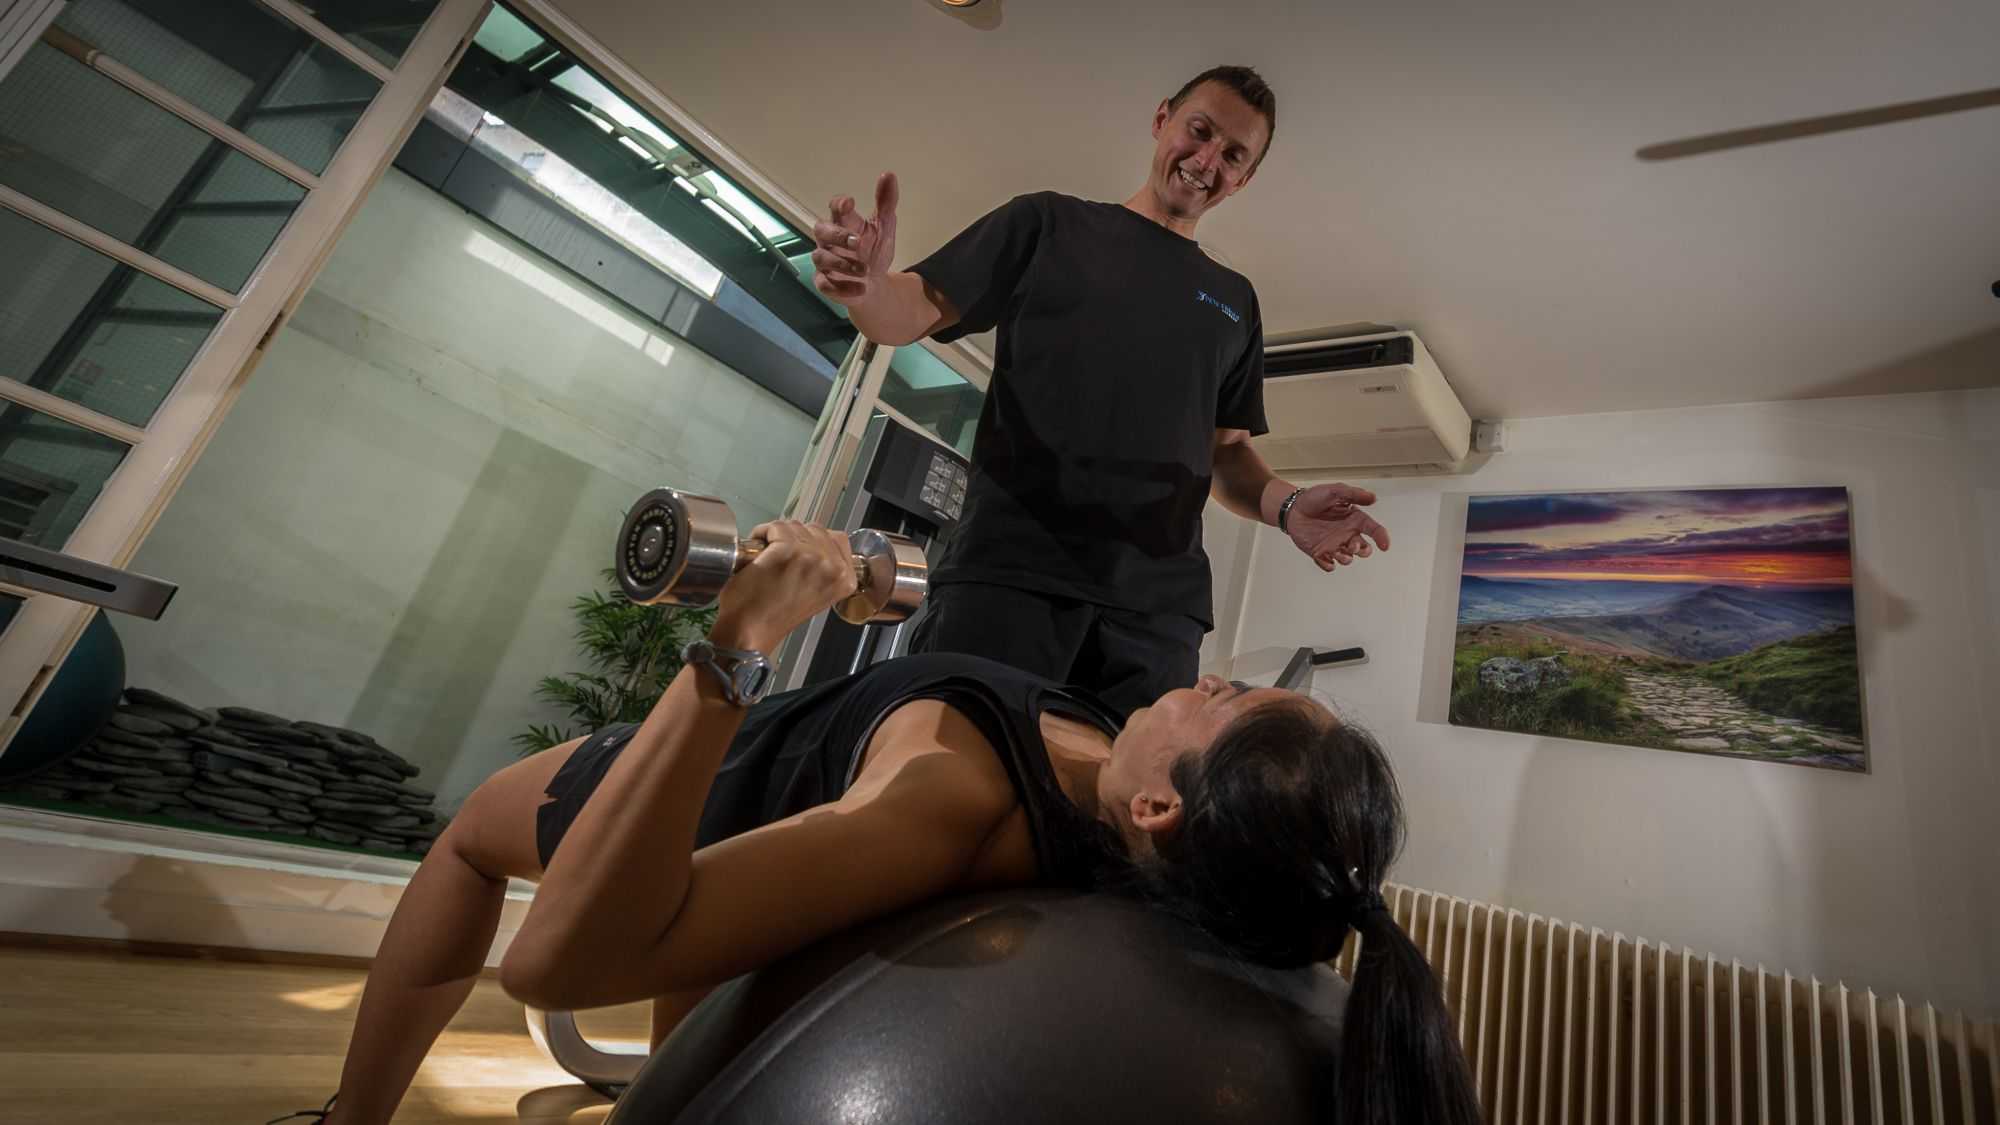 personal training london